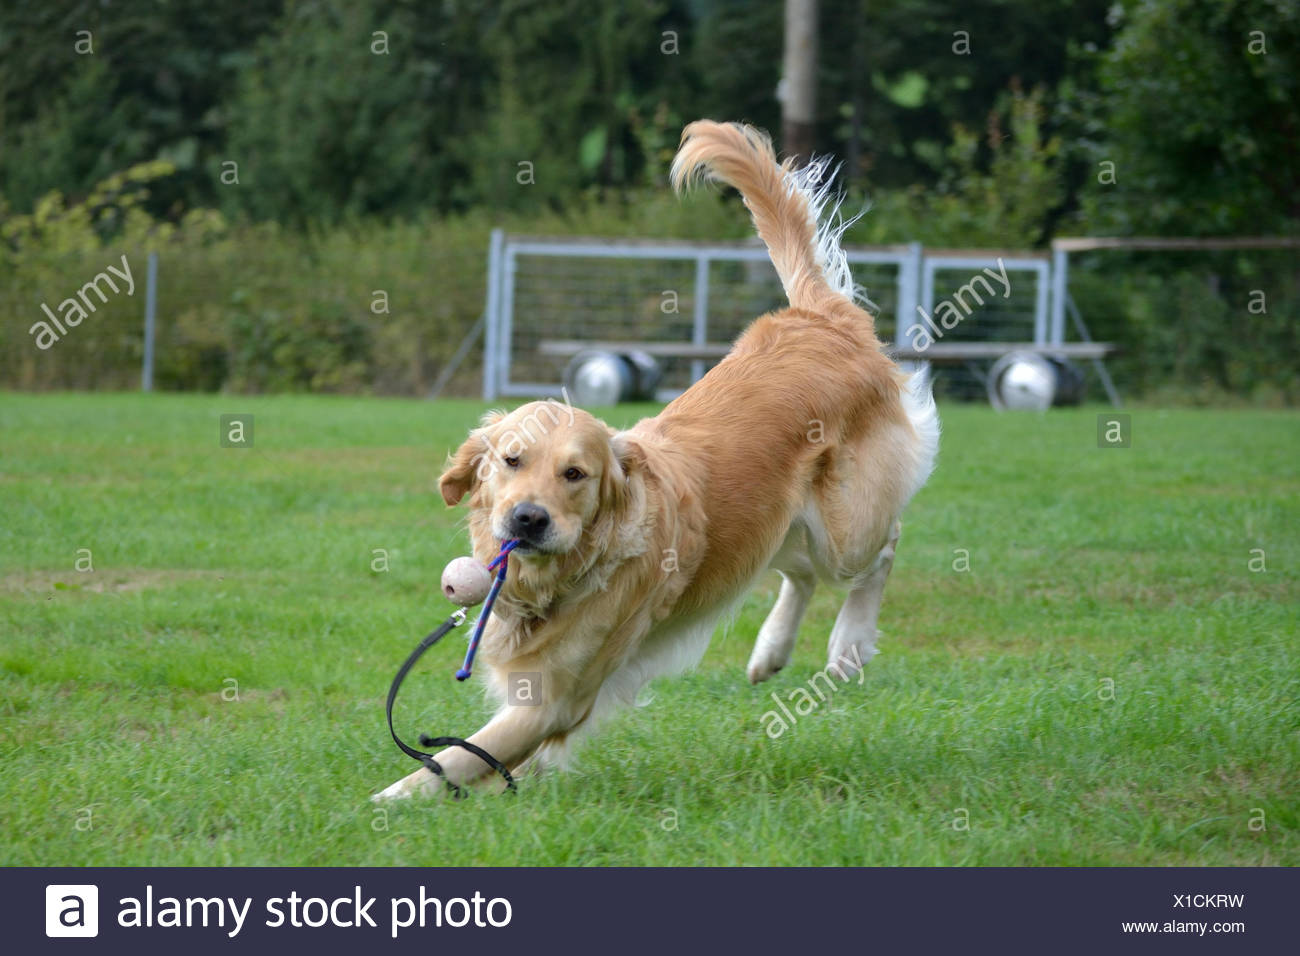 Golden Retriever retrieves ball - Stock Image